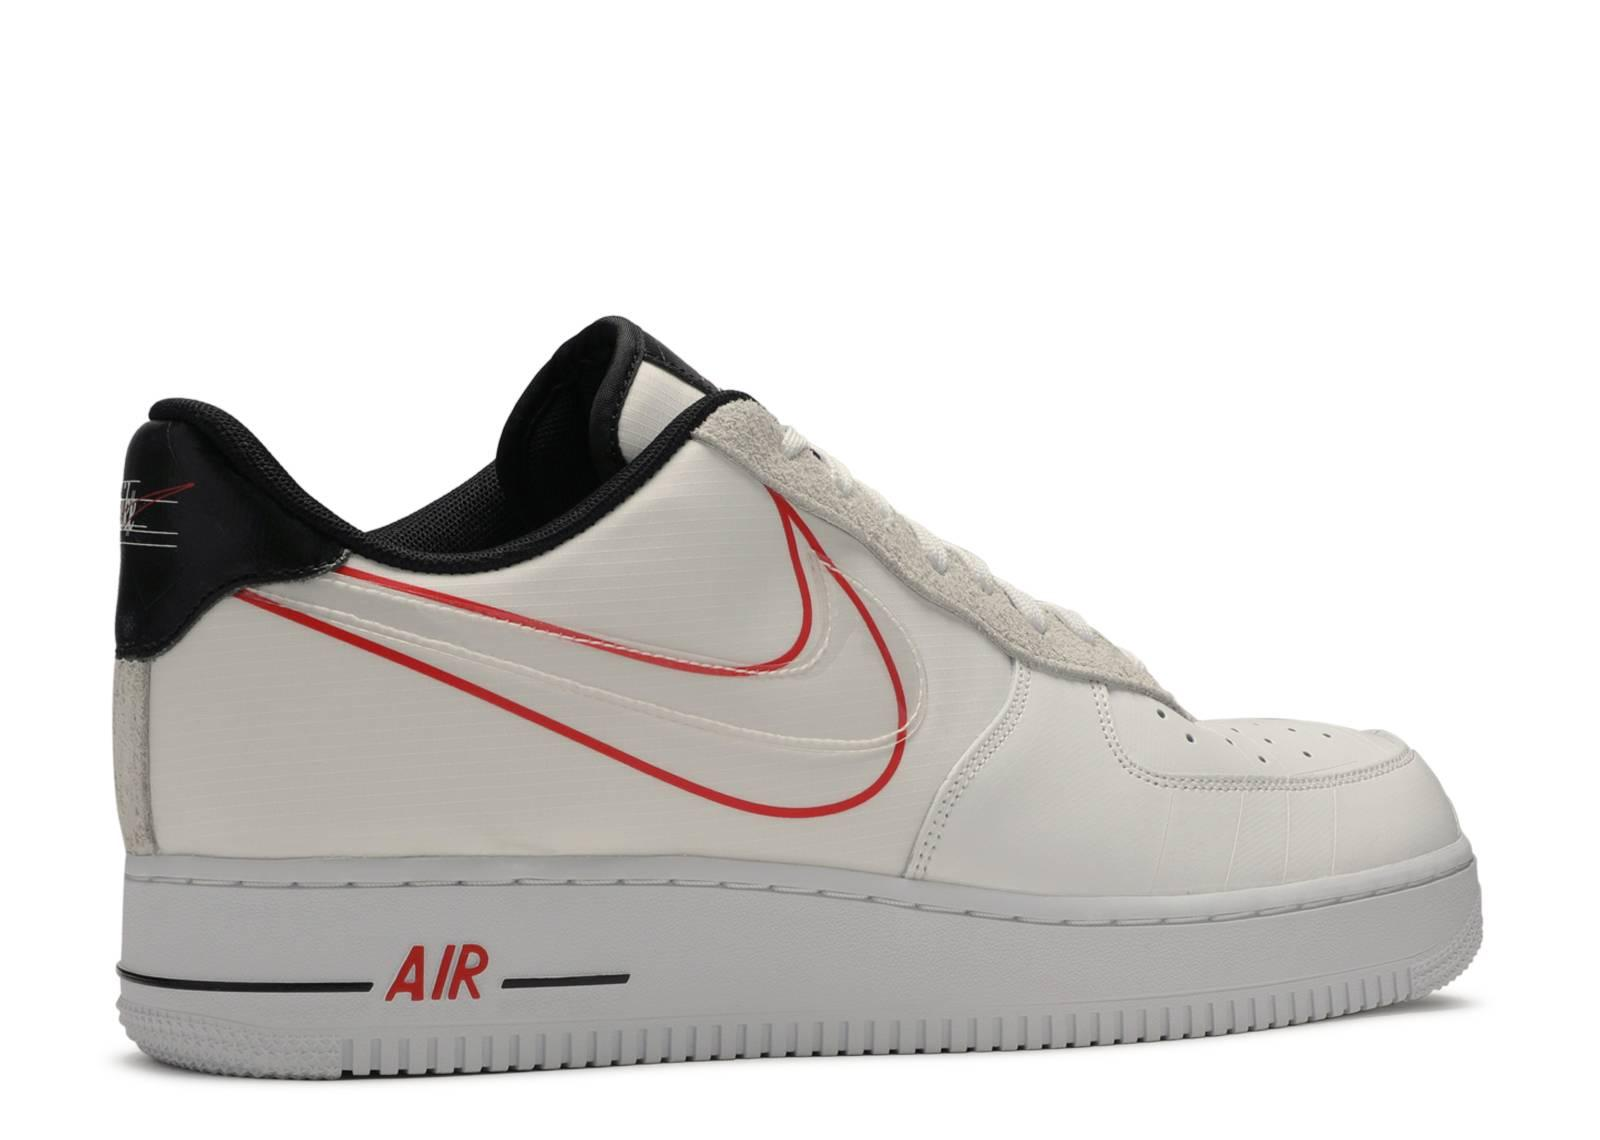 Engañoso A gran escala Mus  Nike Air Force 1 Low Script Swoosh Pack in White/Black-University Red  (White) for Men - Save 38% - Lyst